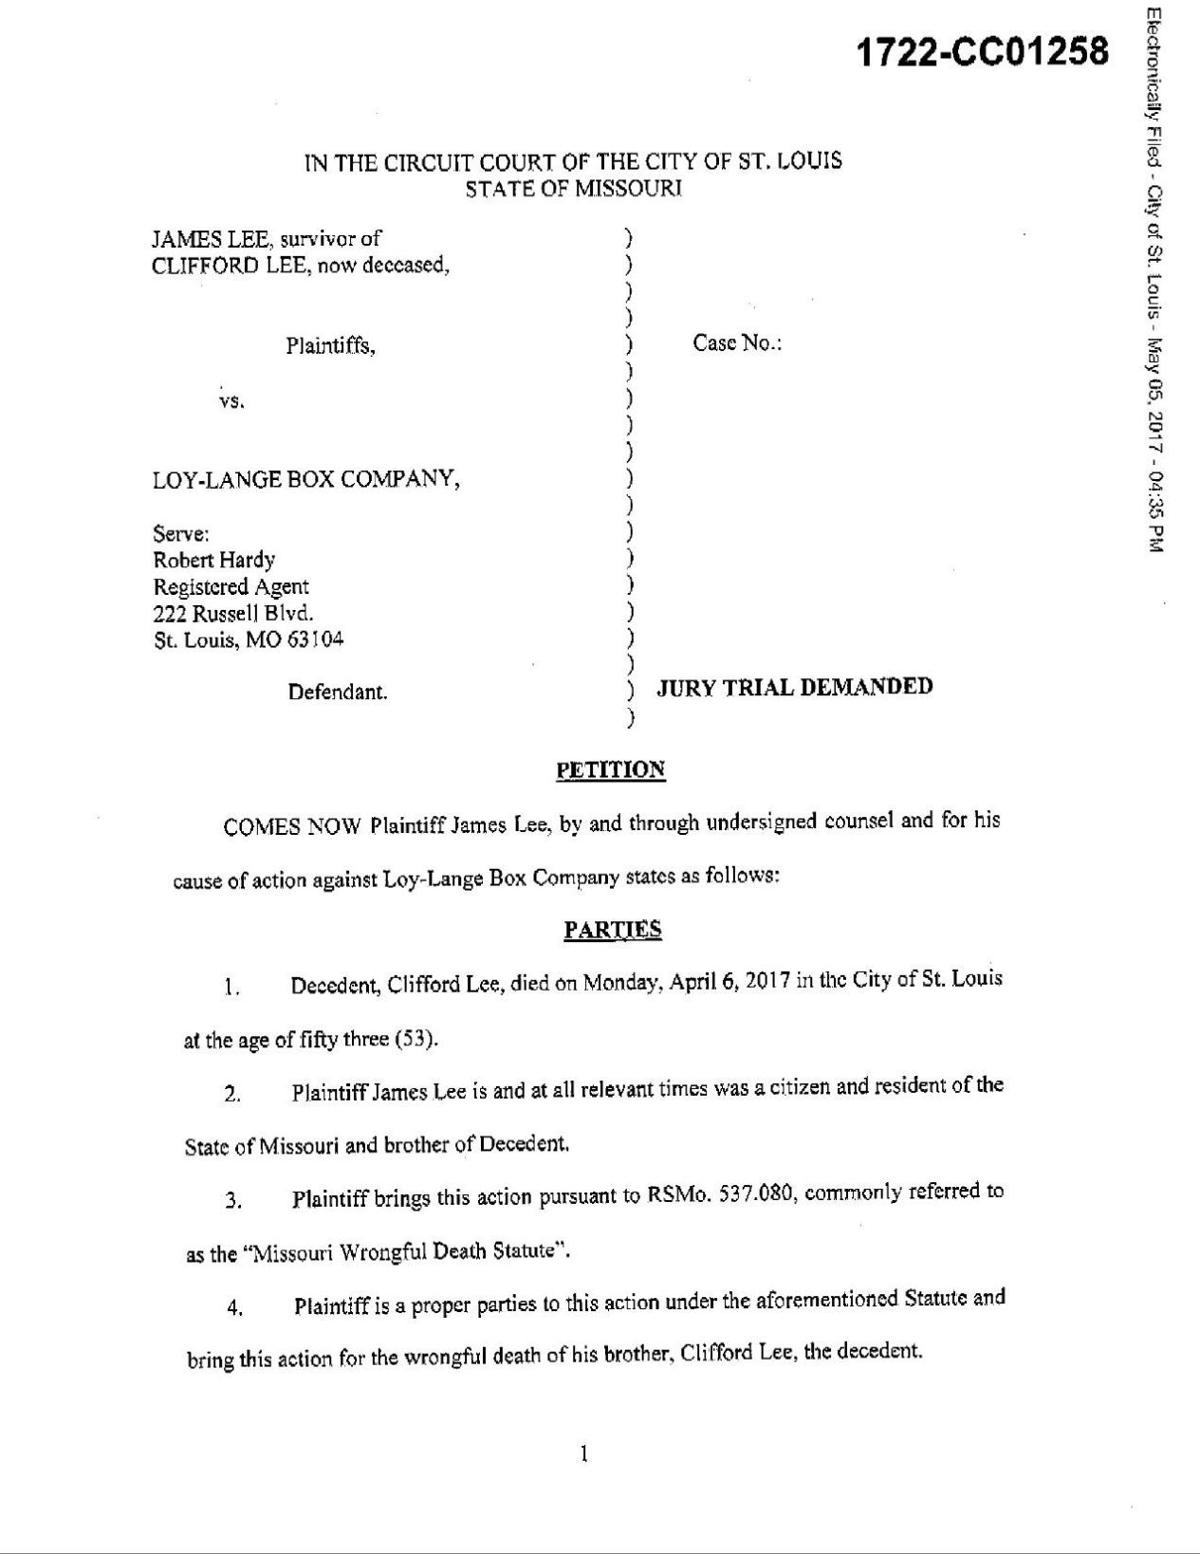 Read the wrongful death lawsuit by James Lee